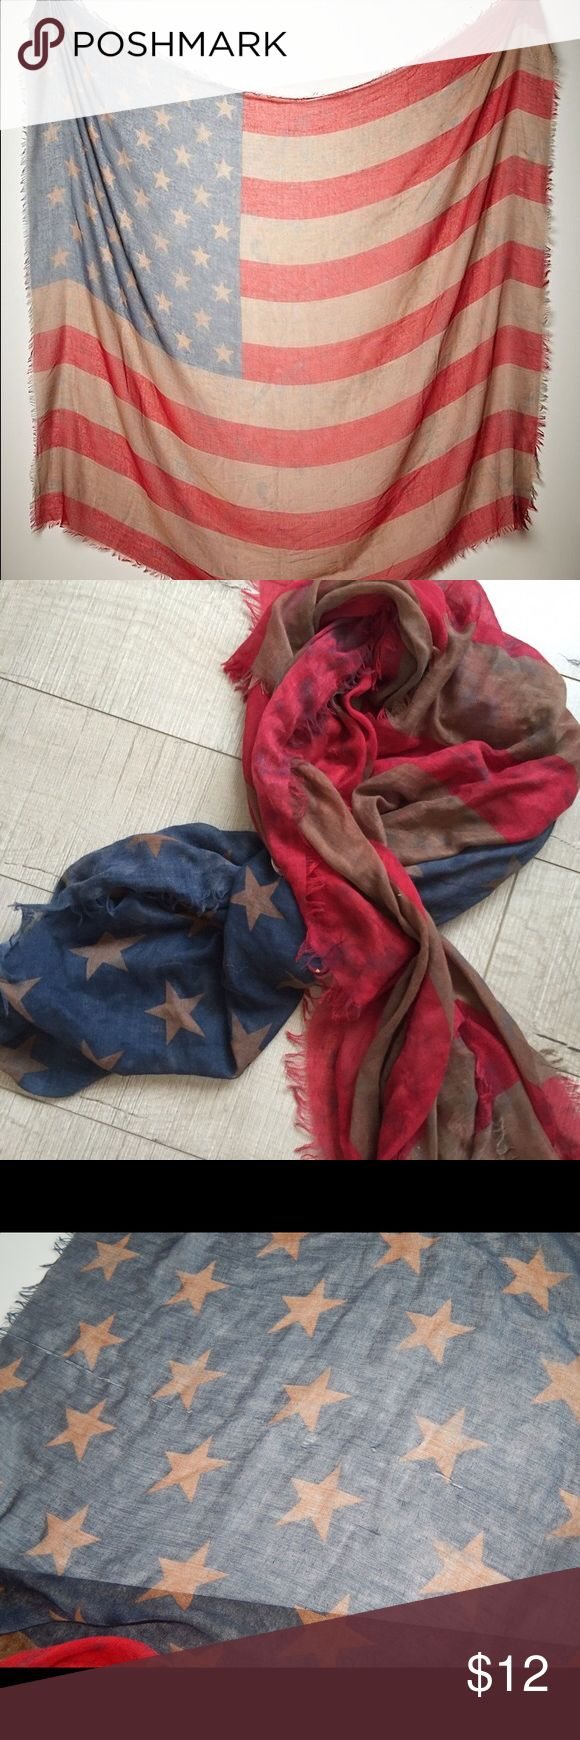 Free People American Flag Scarf Large American flag scarf. Has 2 snags as shown in pictures Free People Accessories Scarves & Wraps